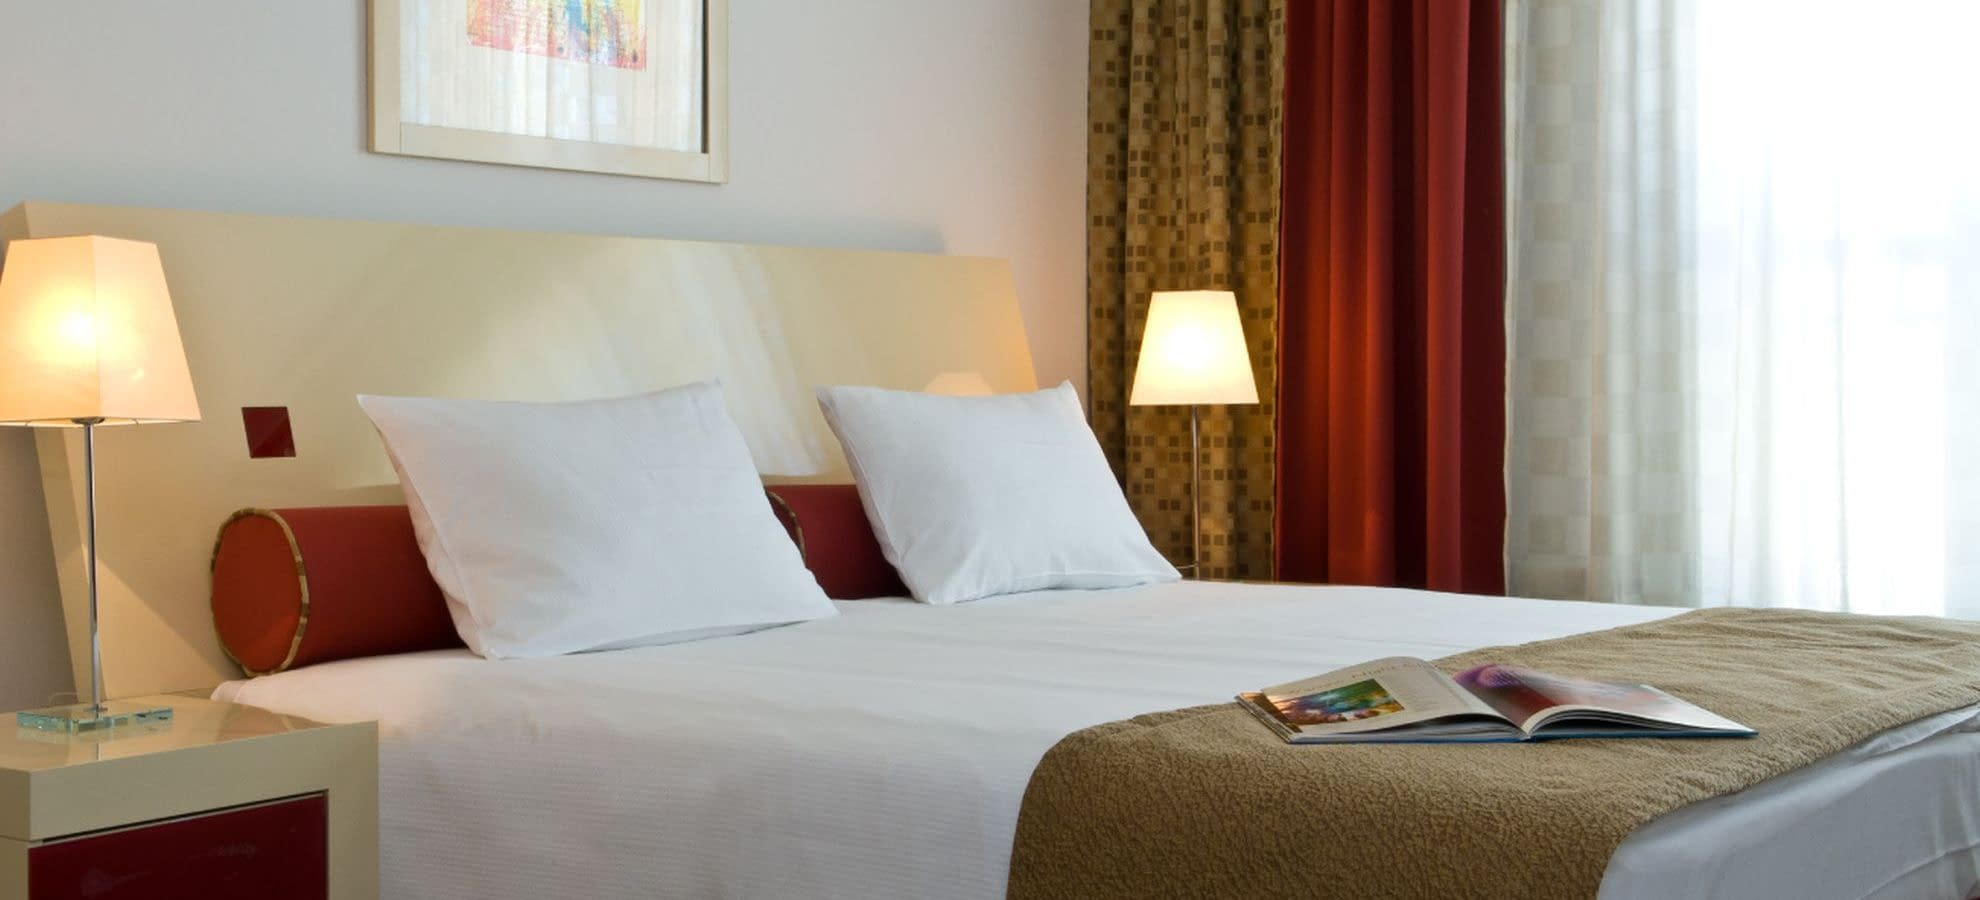 two bedroom suite. Mamaison Diana Warsaw Two bedroom Suite Bed TWO BEDROOM DIANA SUITE  Residence